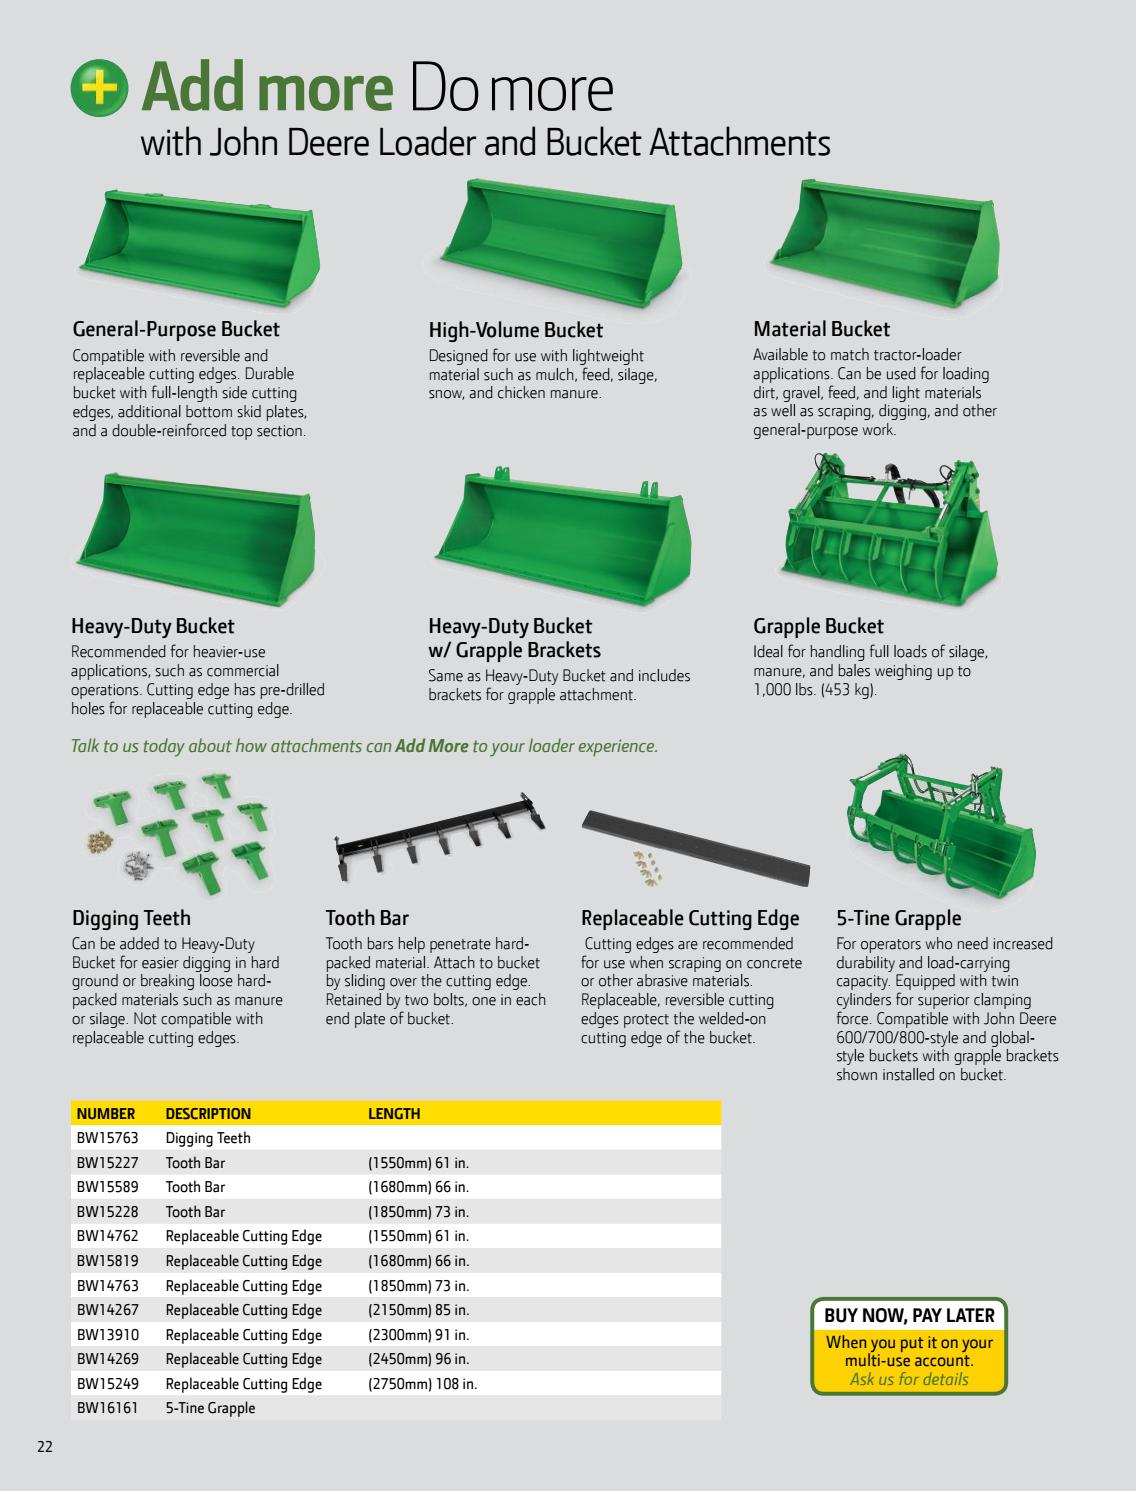 John Deere Winter Catalog by teamsi - issuu